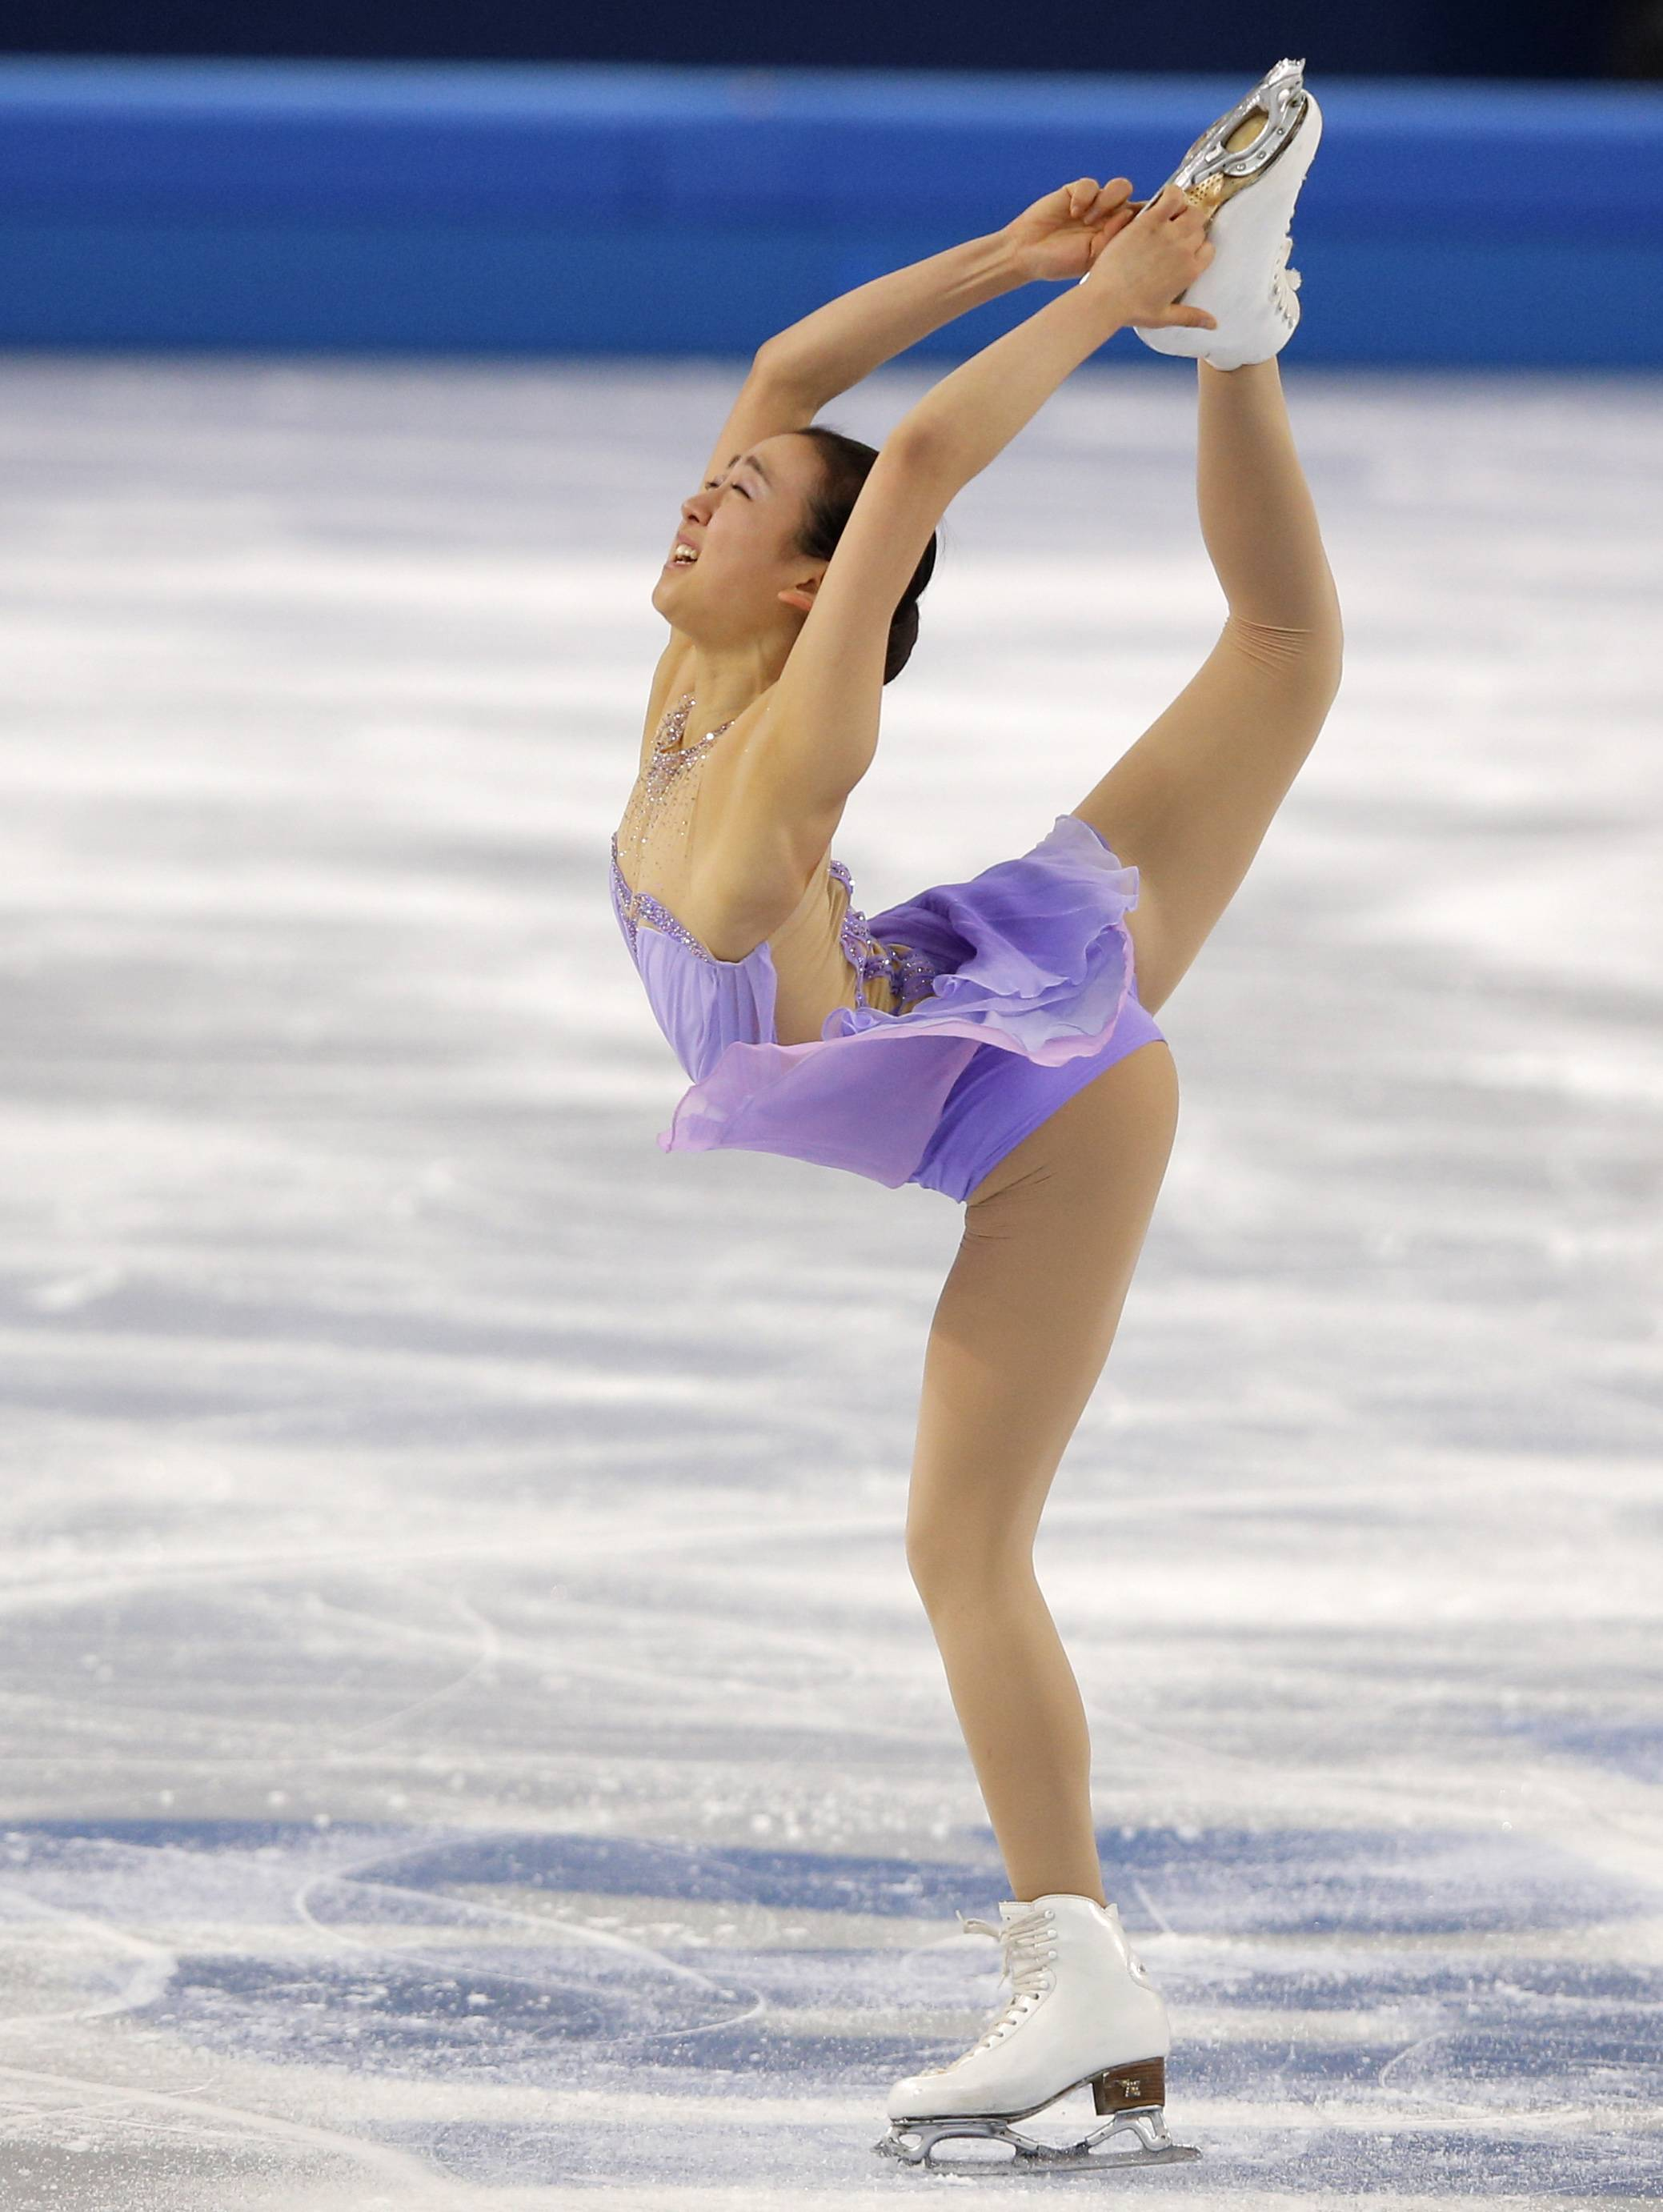 Mao Asada of Japan competes in the women's short program figure skating competition.